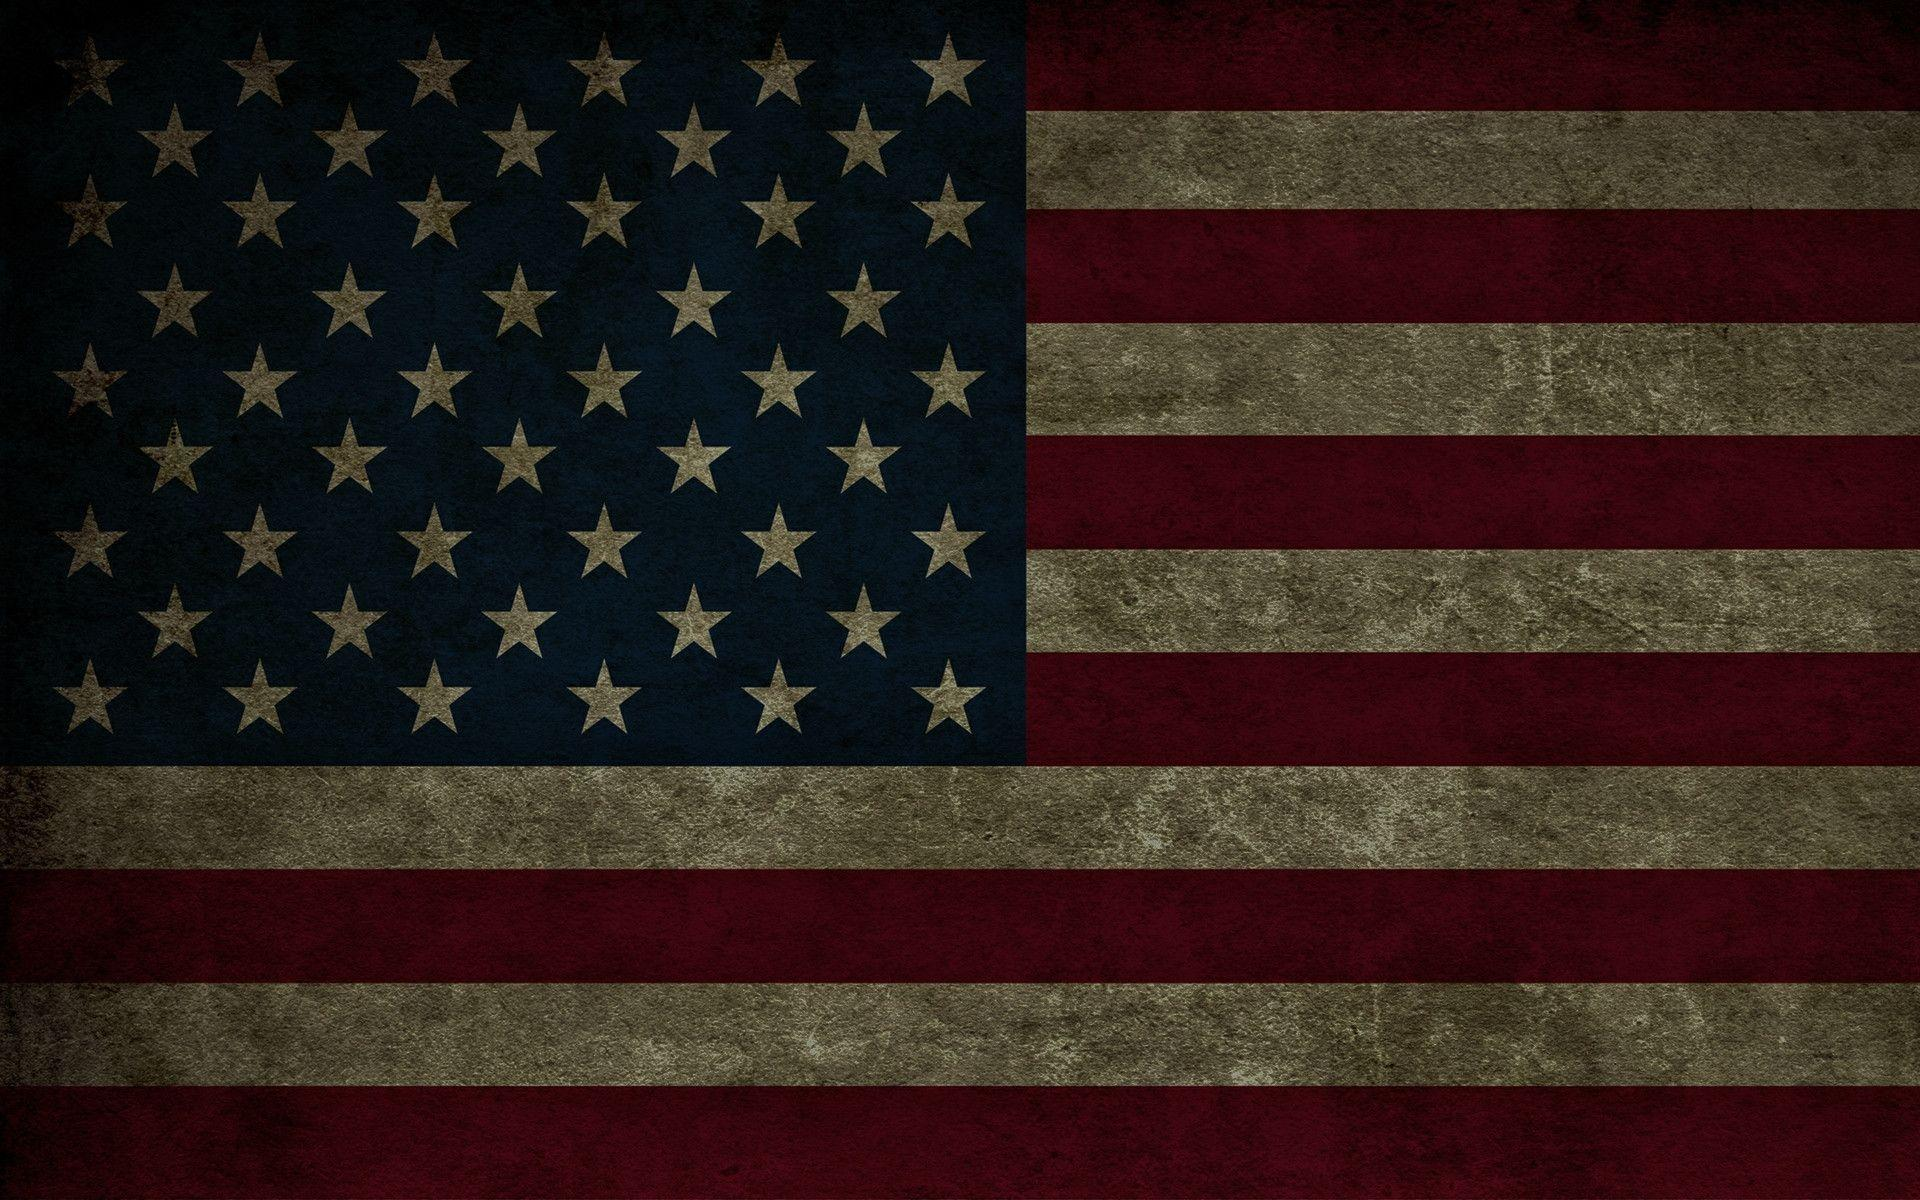 American background hd